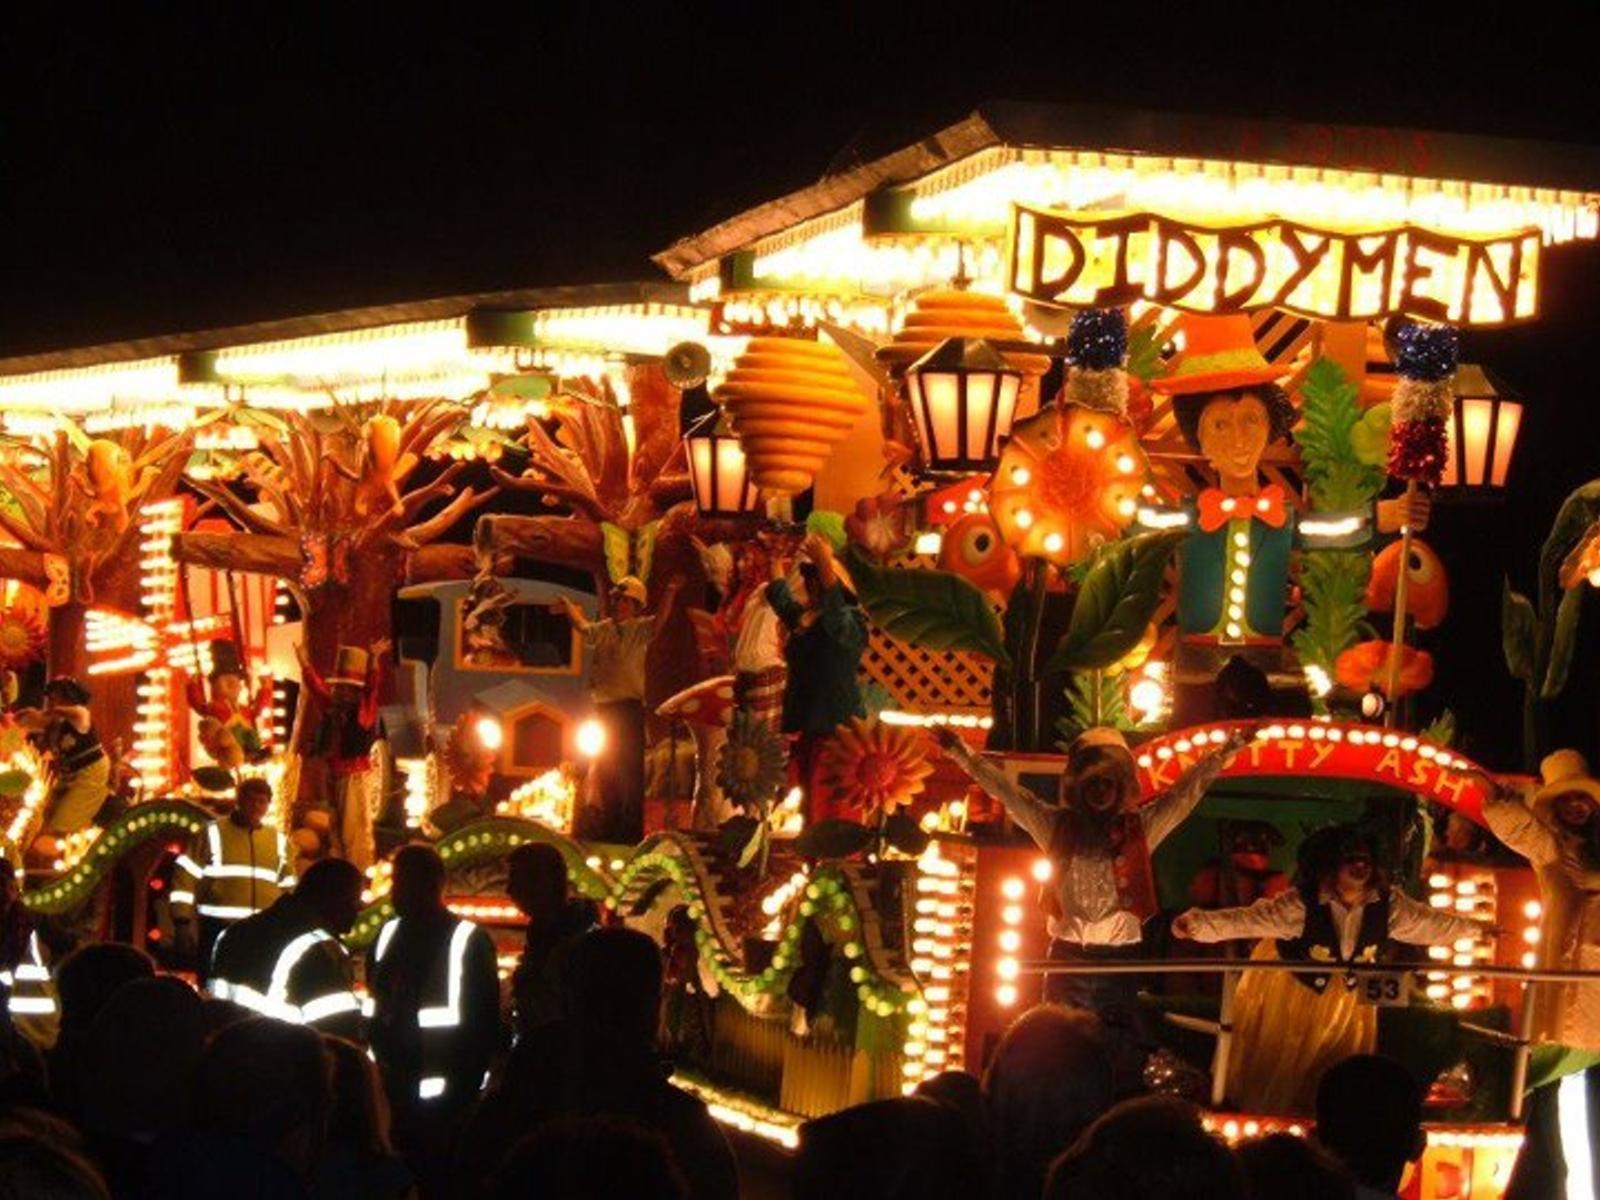 CARNIVAL: the procession starts at 7pm but don't miss the daytime activities